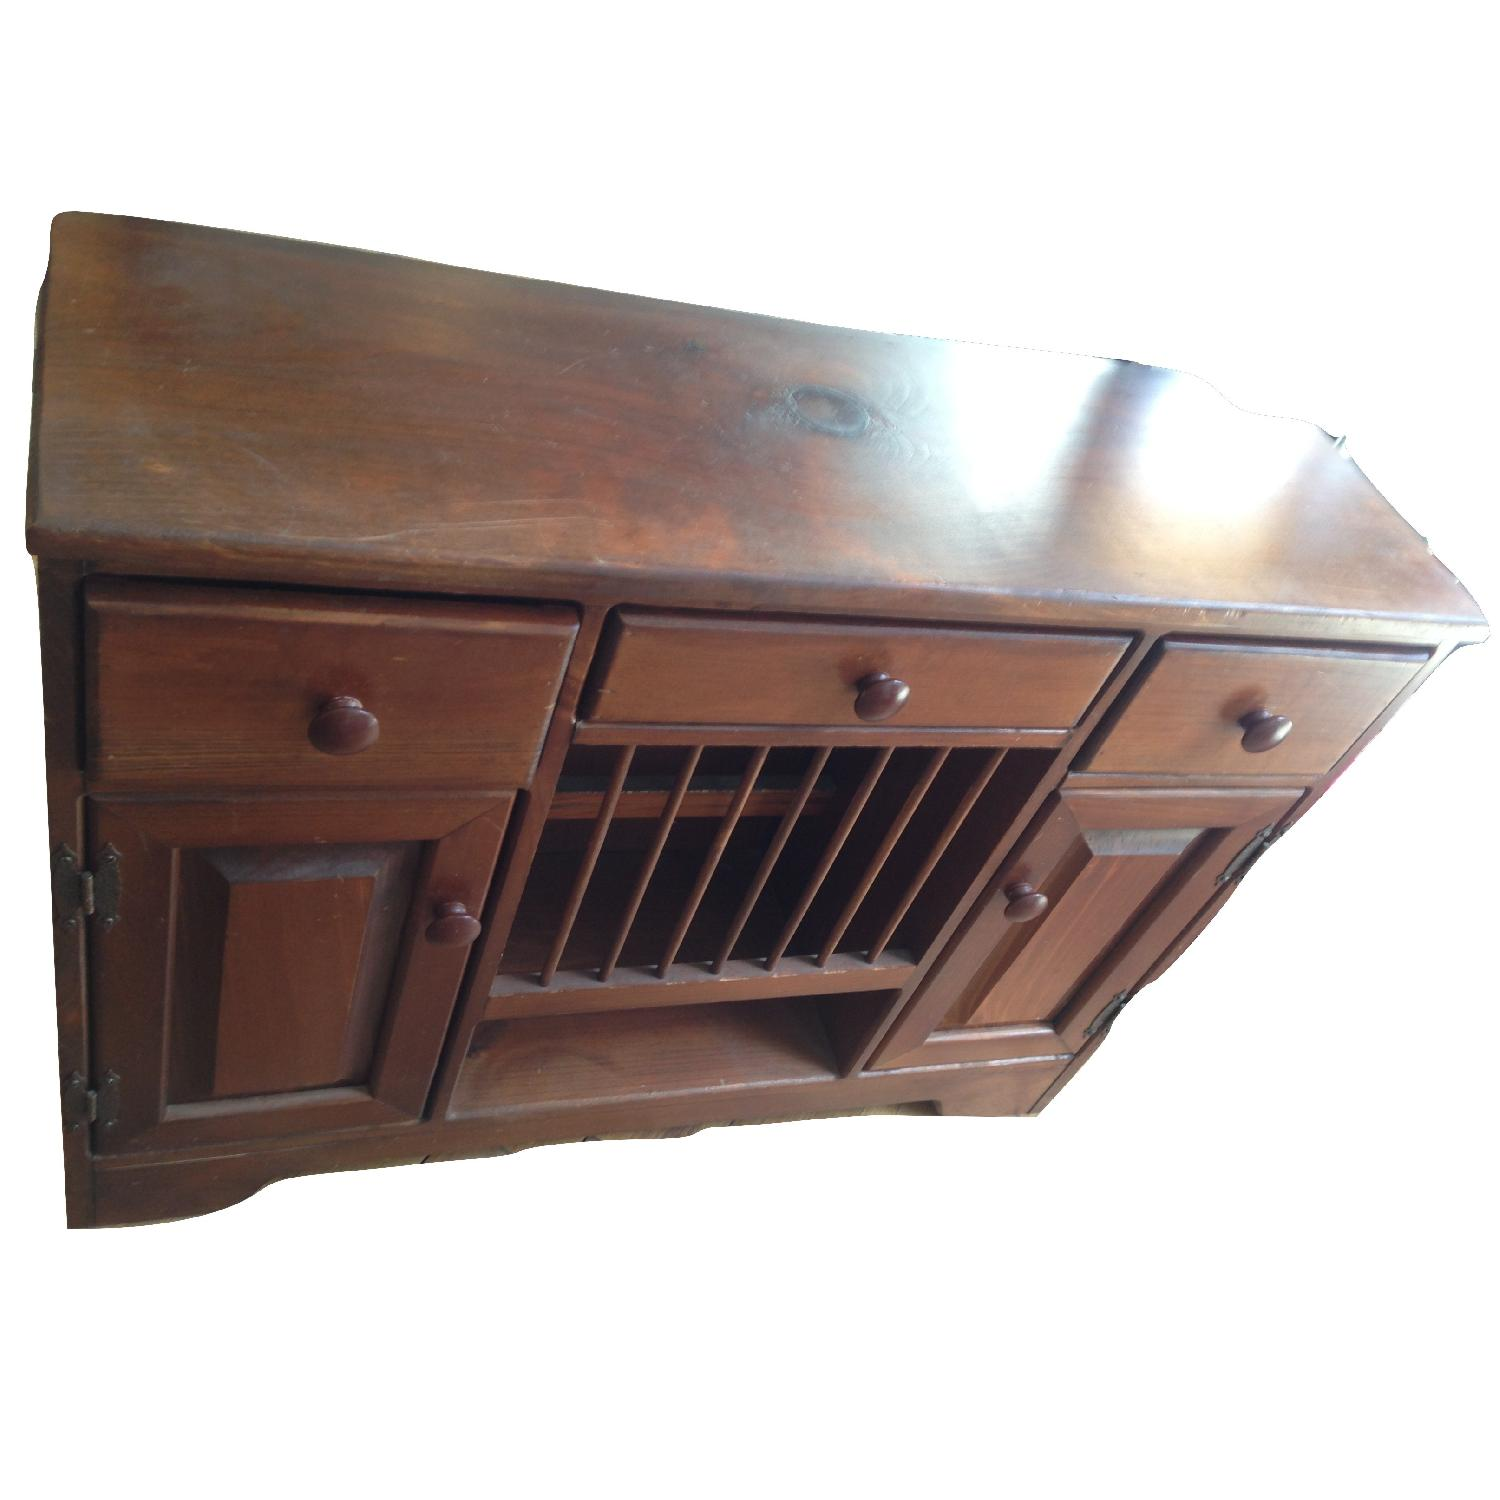 Vintage Small Wood Dresser/Sideboard